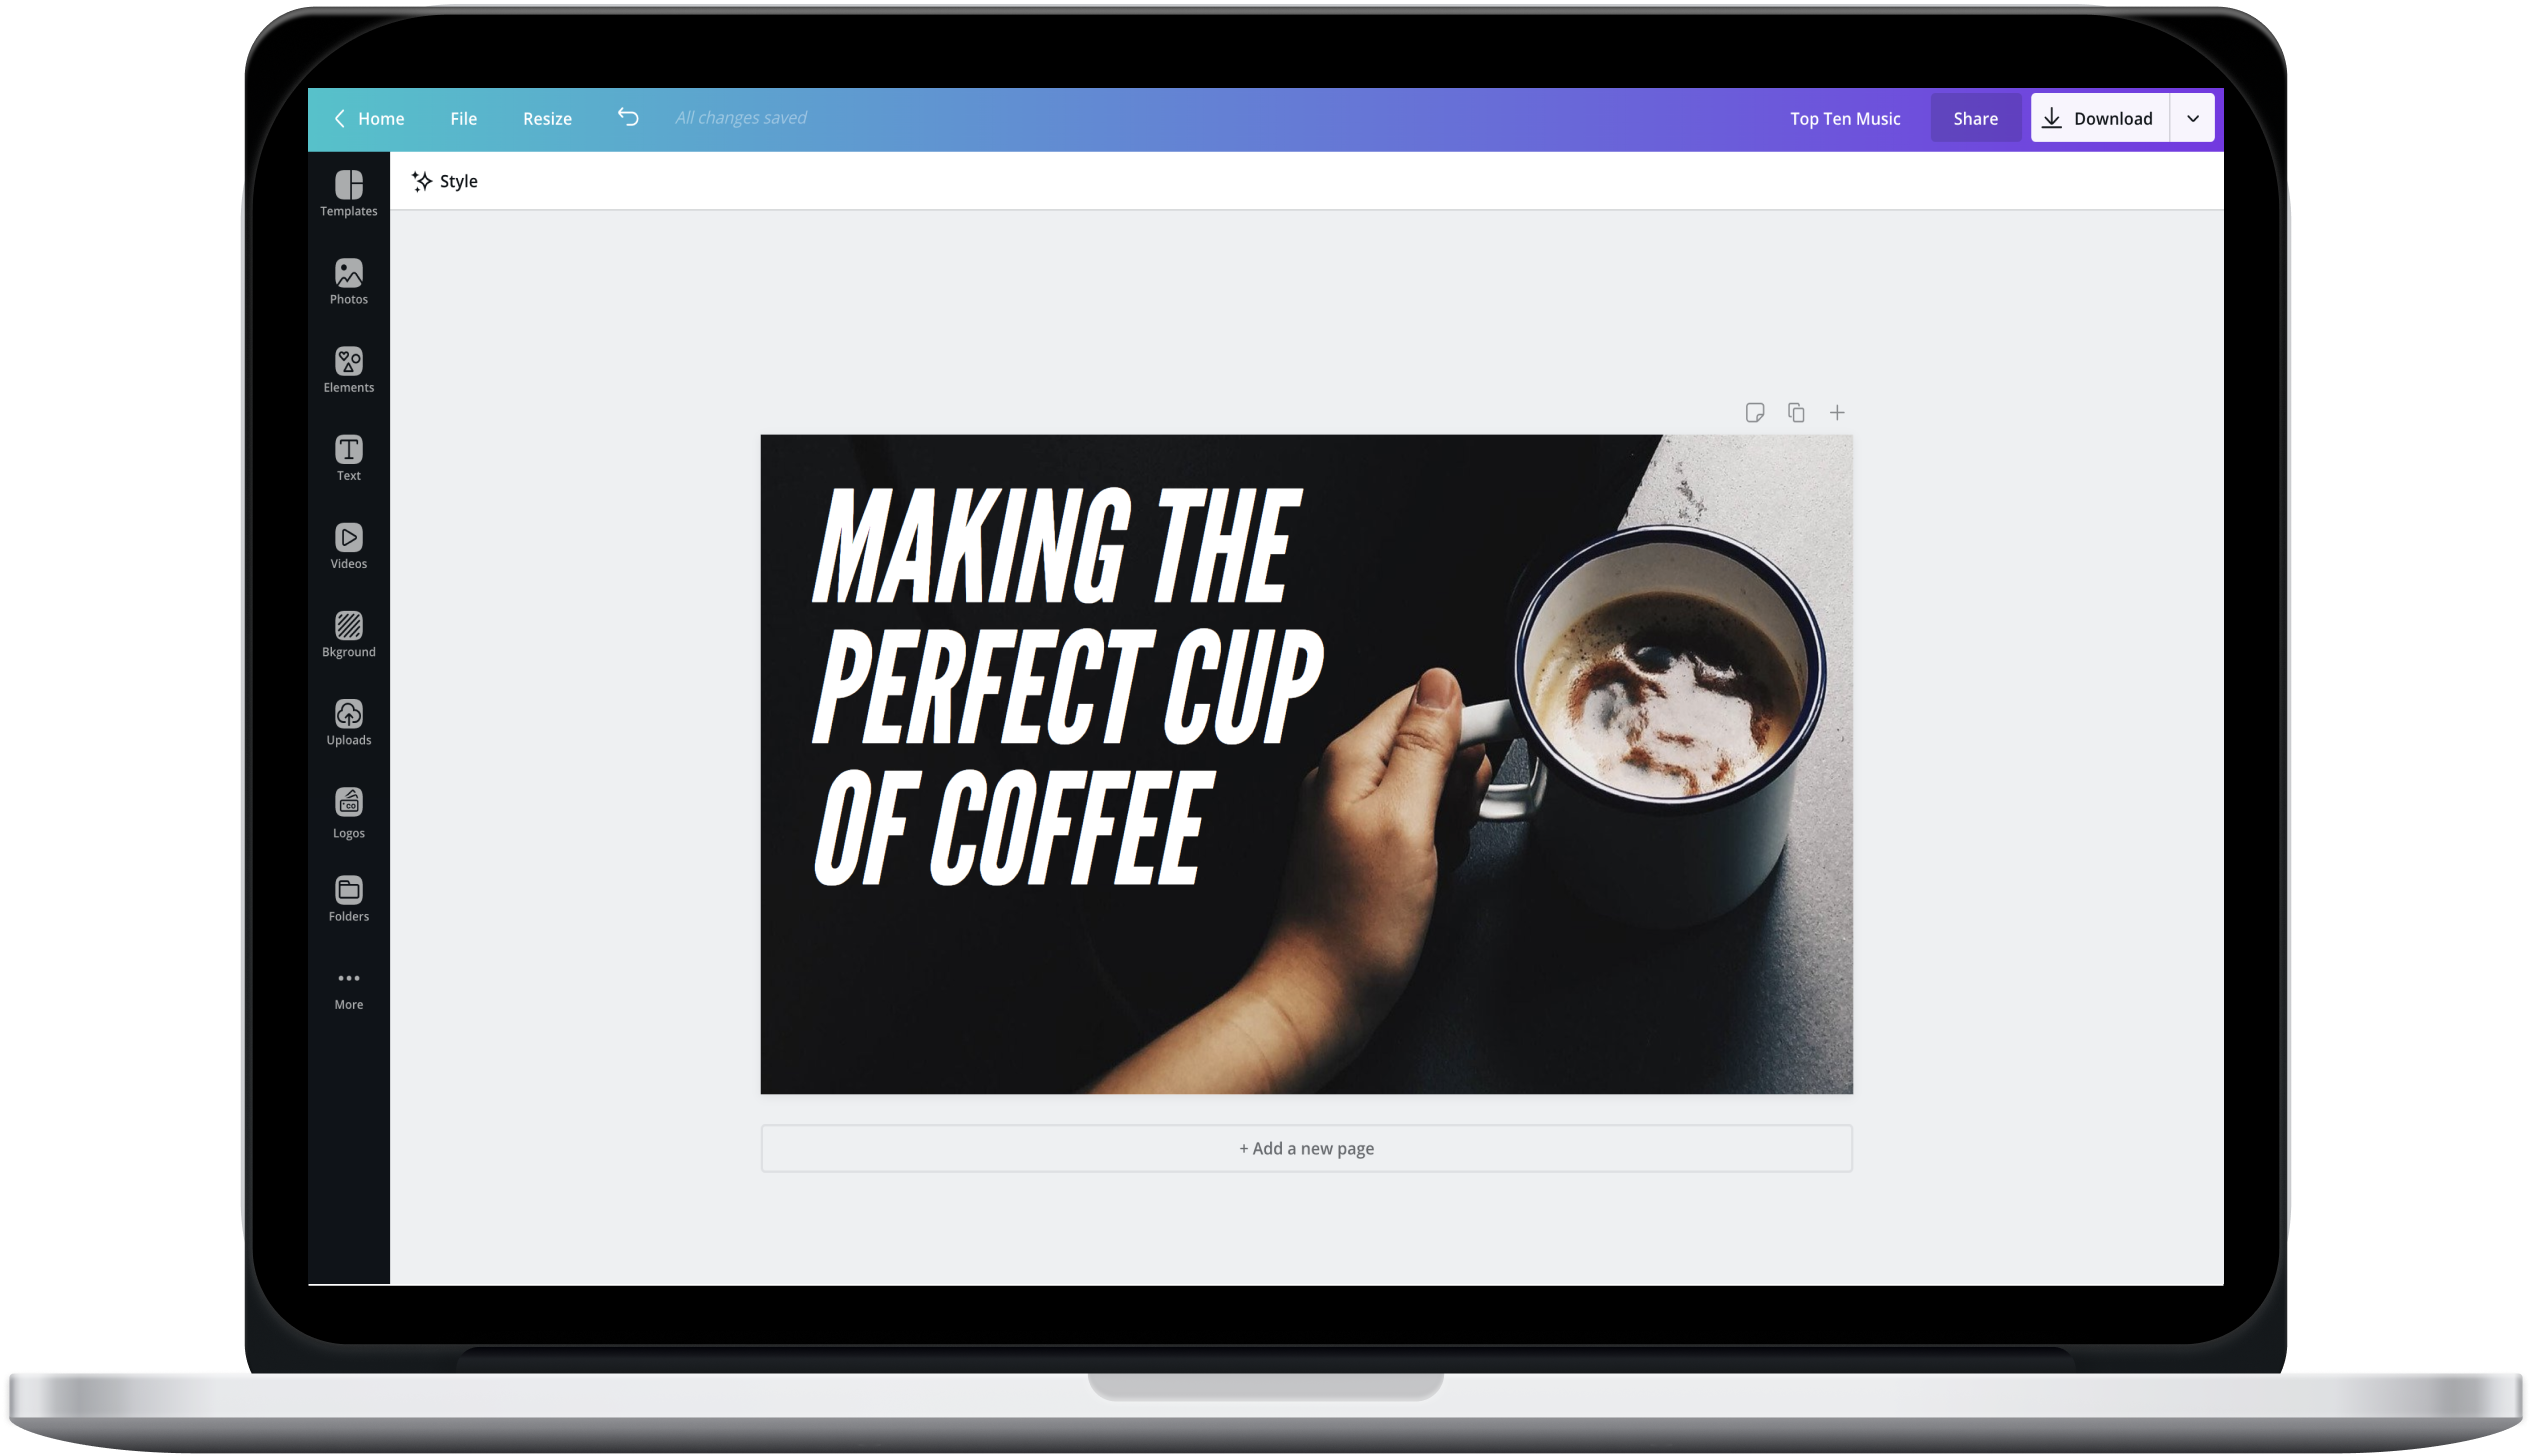 Canva editor showing a YouTube channel art design